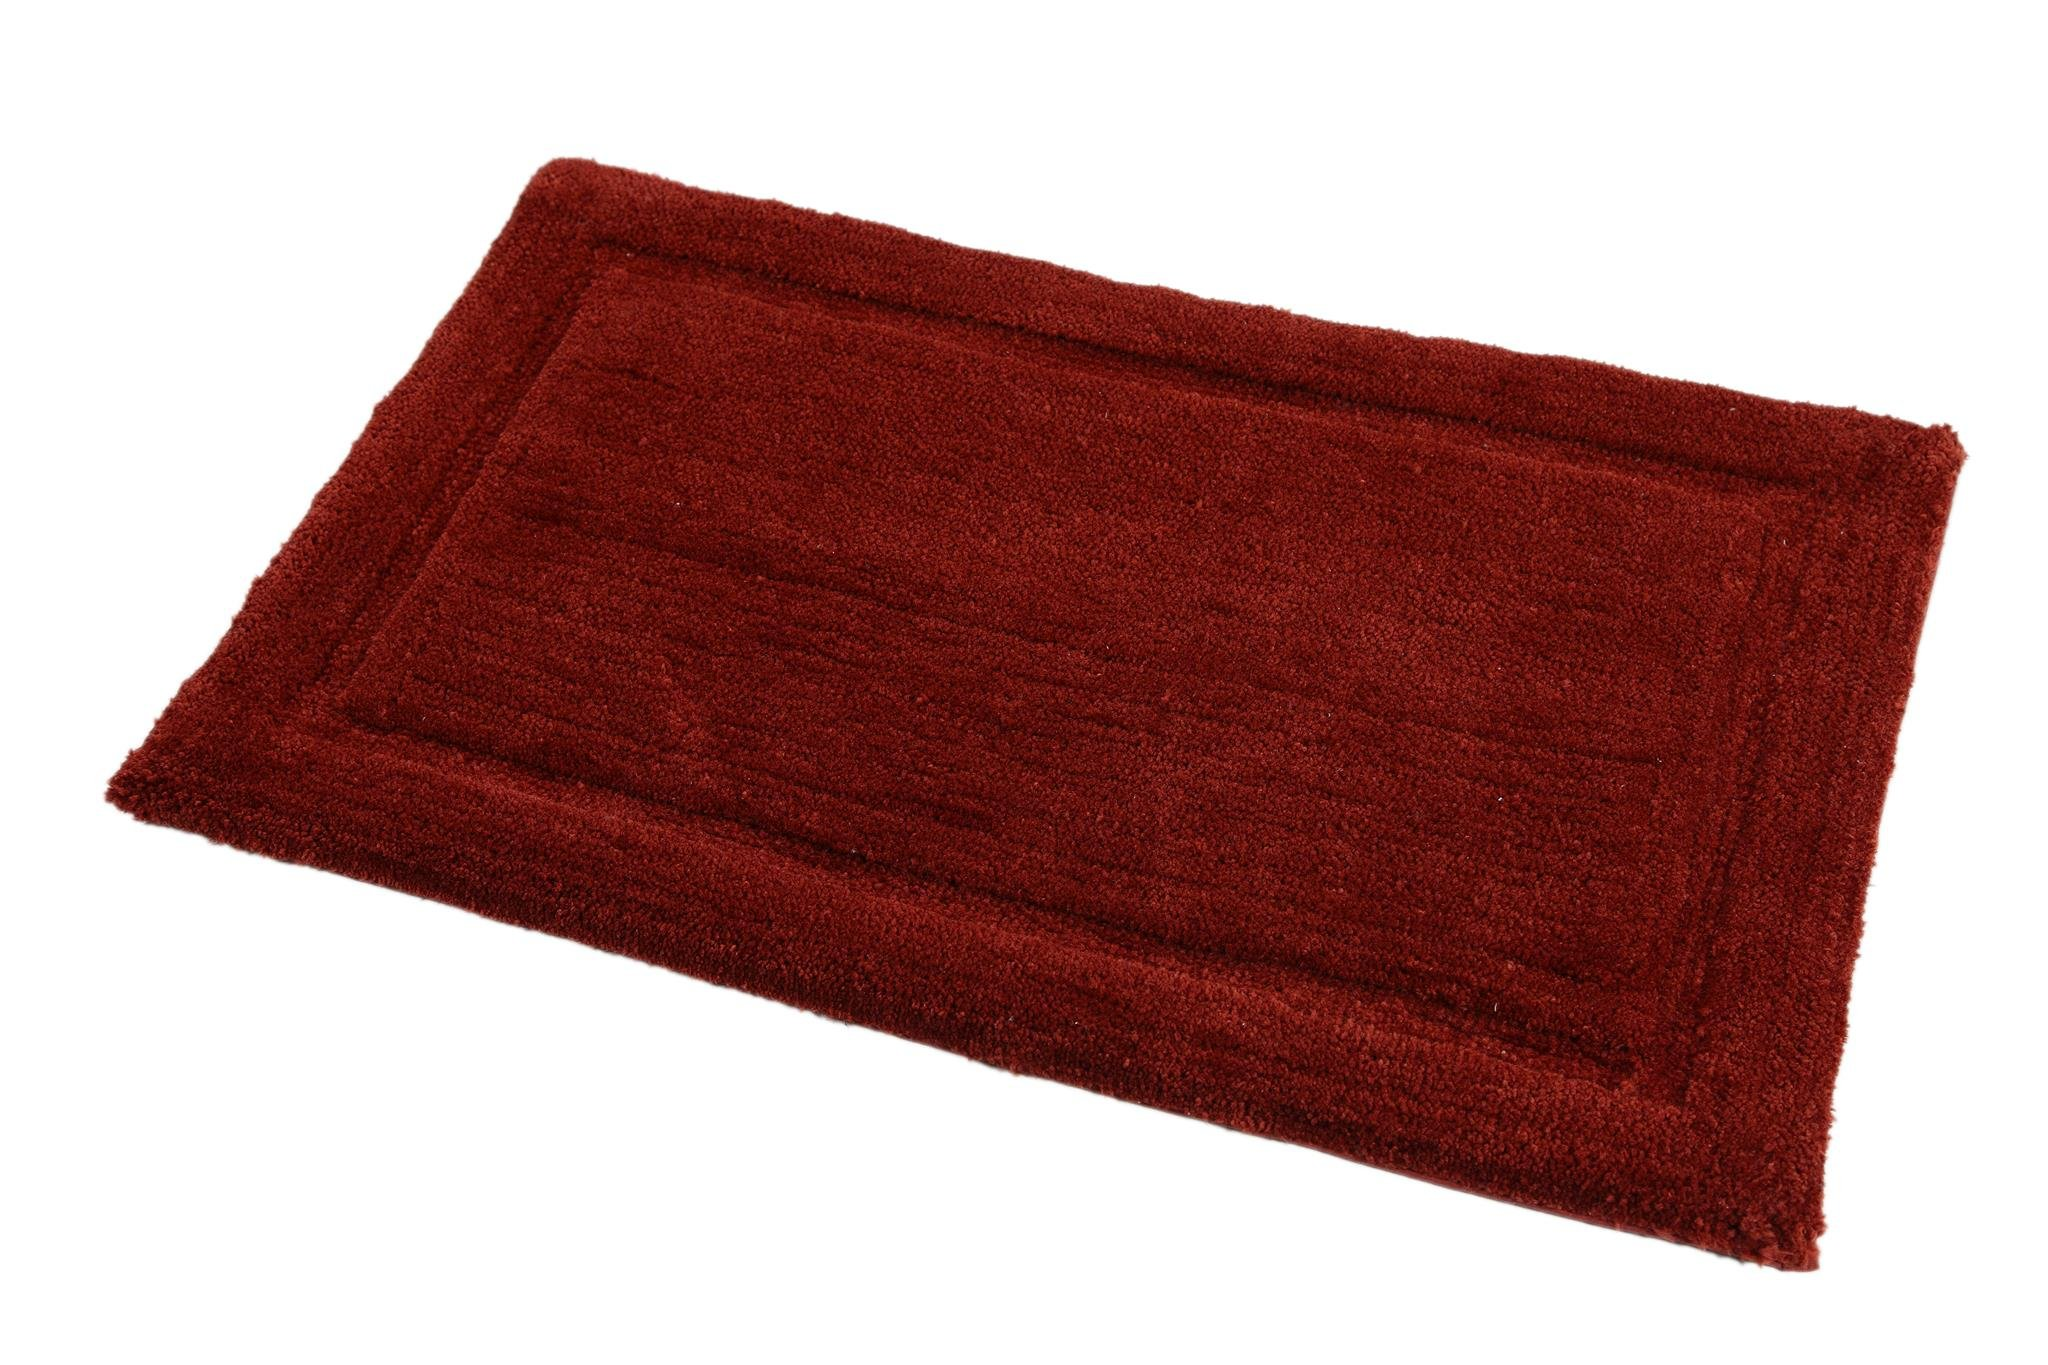 WARISI - Track Collection - Solids microfiber Bathroom, Bedroom Rug, 34 x 21 inches (Marsala) by WARISI (Image #7)